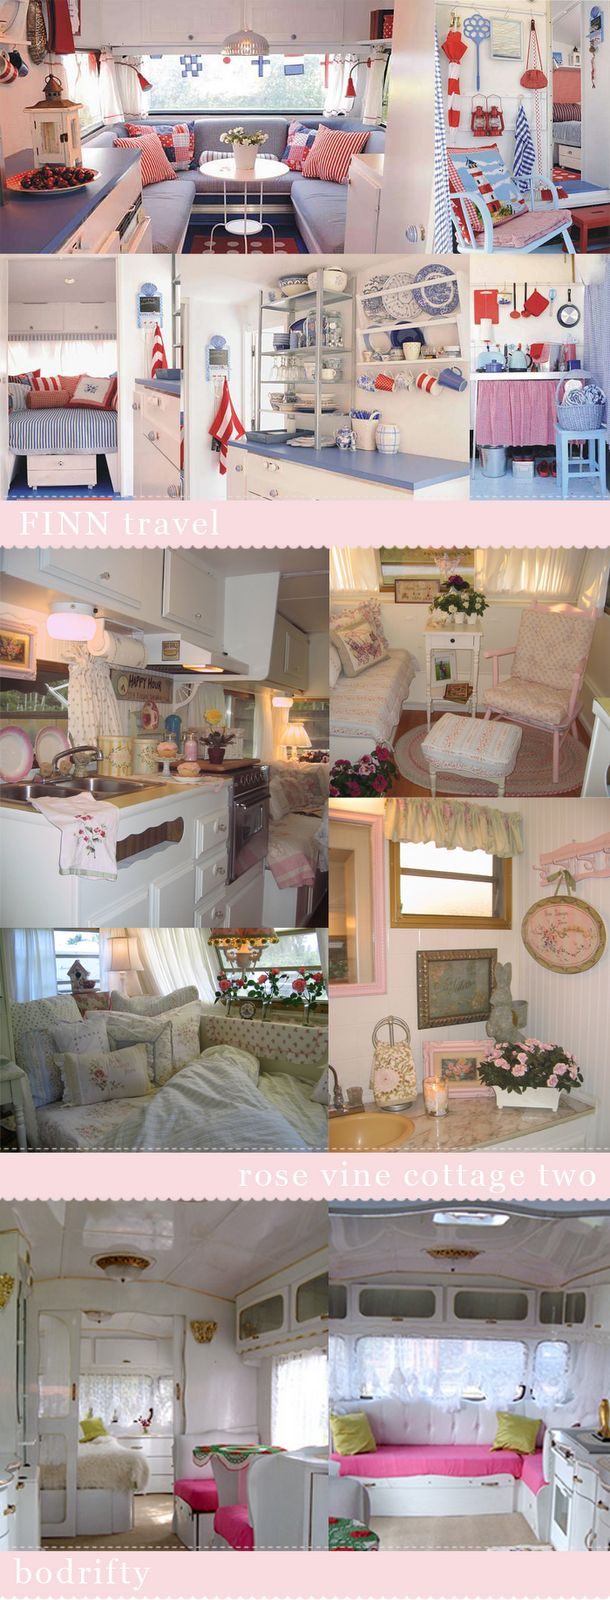 Inspiring Camper makeovers | Lovelie: A Creative & Inspirational Design Blog